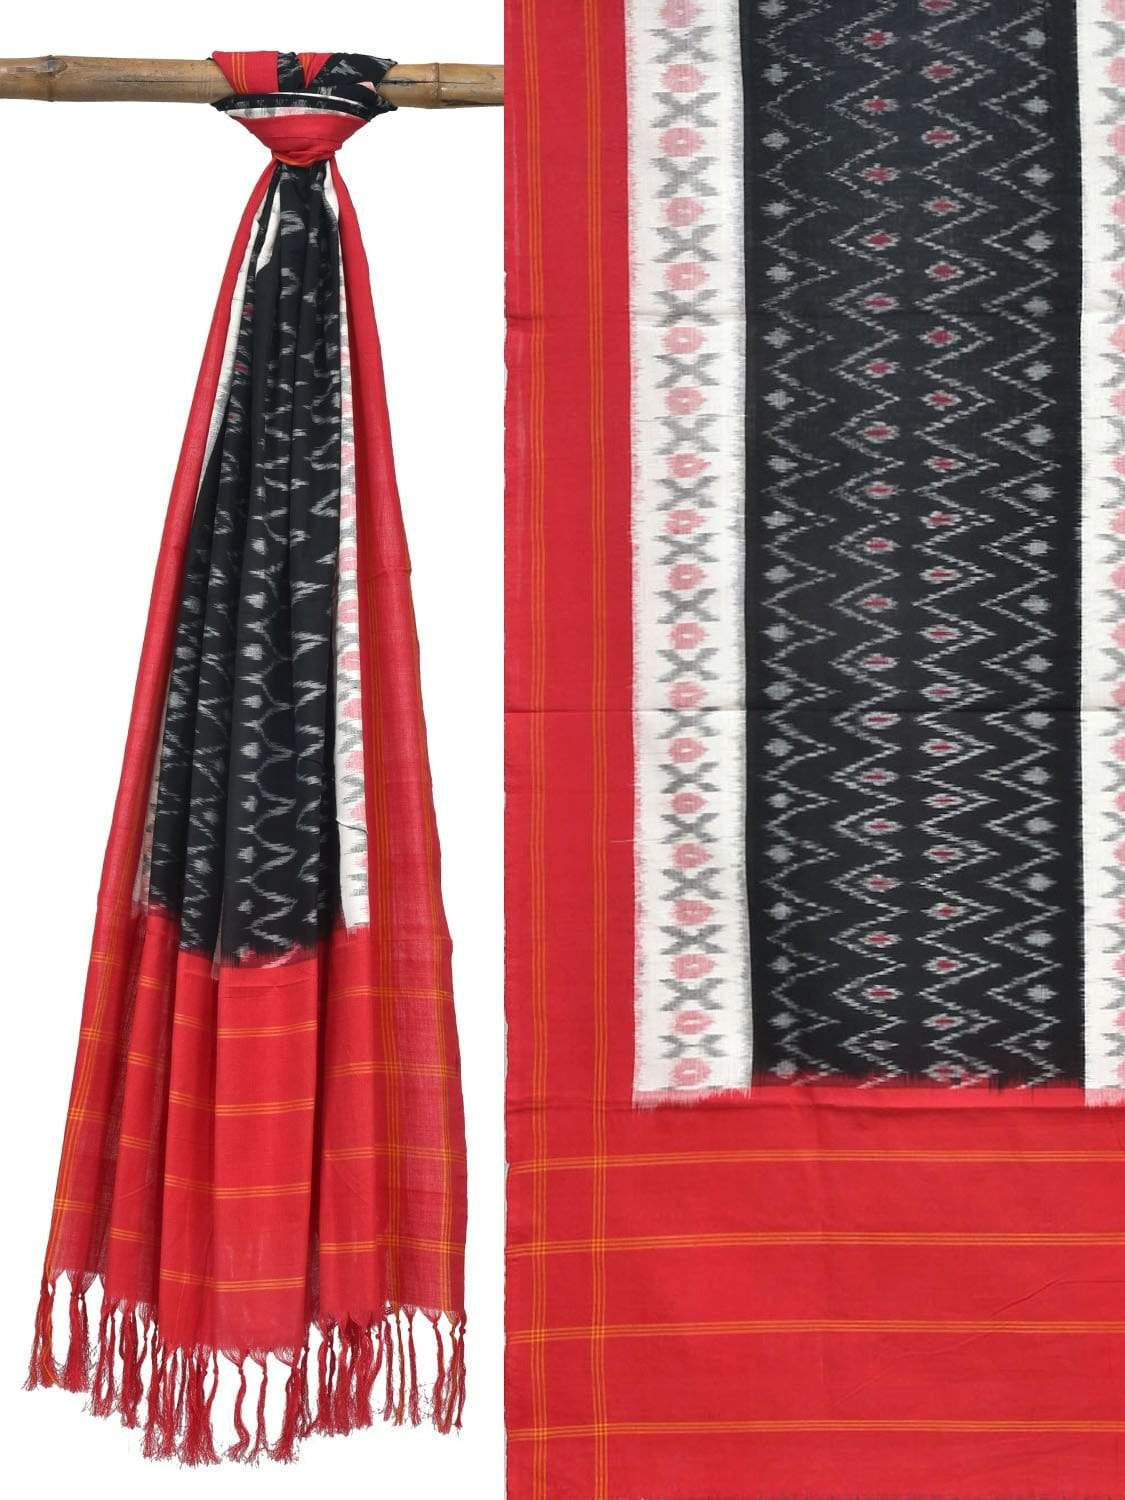 Red and Black Pochampally Ikat Cotton Handloom Dupatta with Zig-Zag Design ds1814